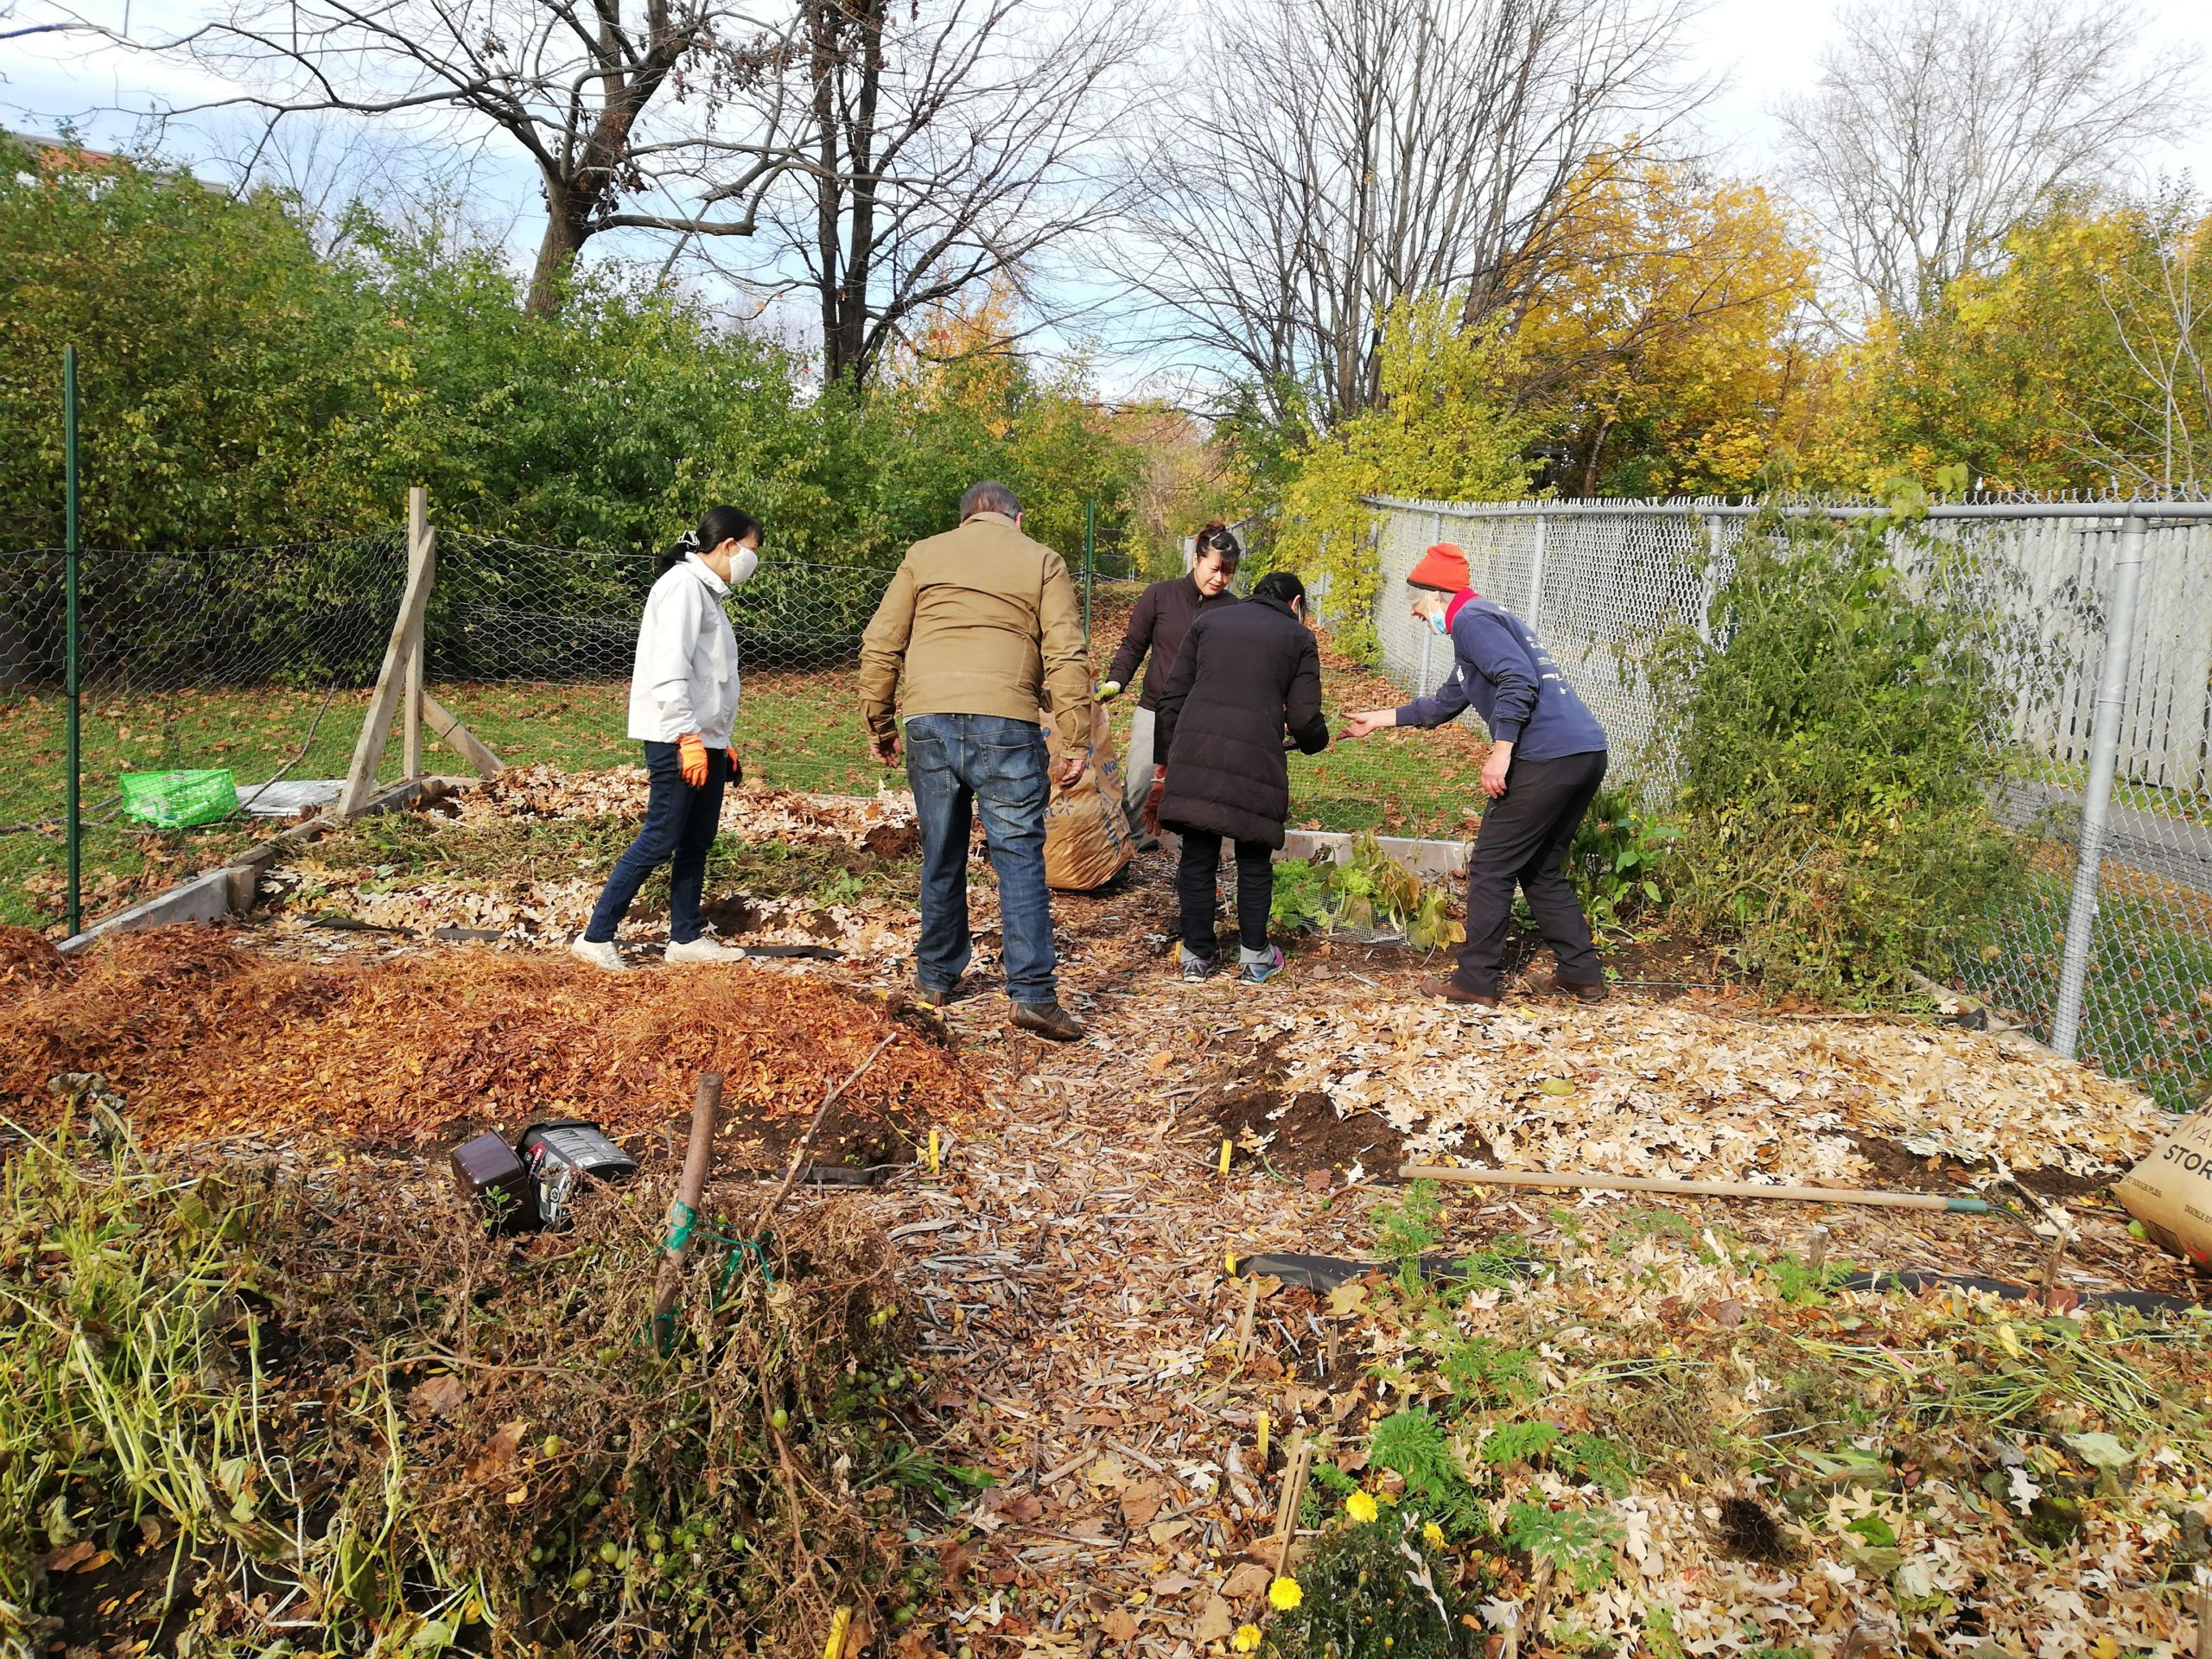 What We Learned this Summer at Our CommunityGarden